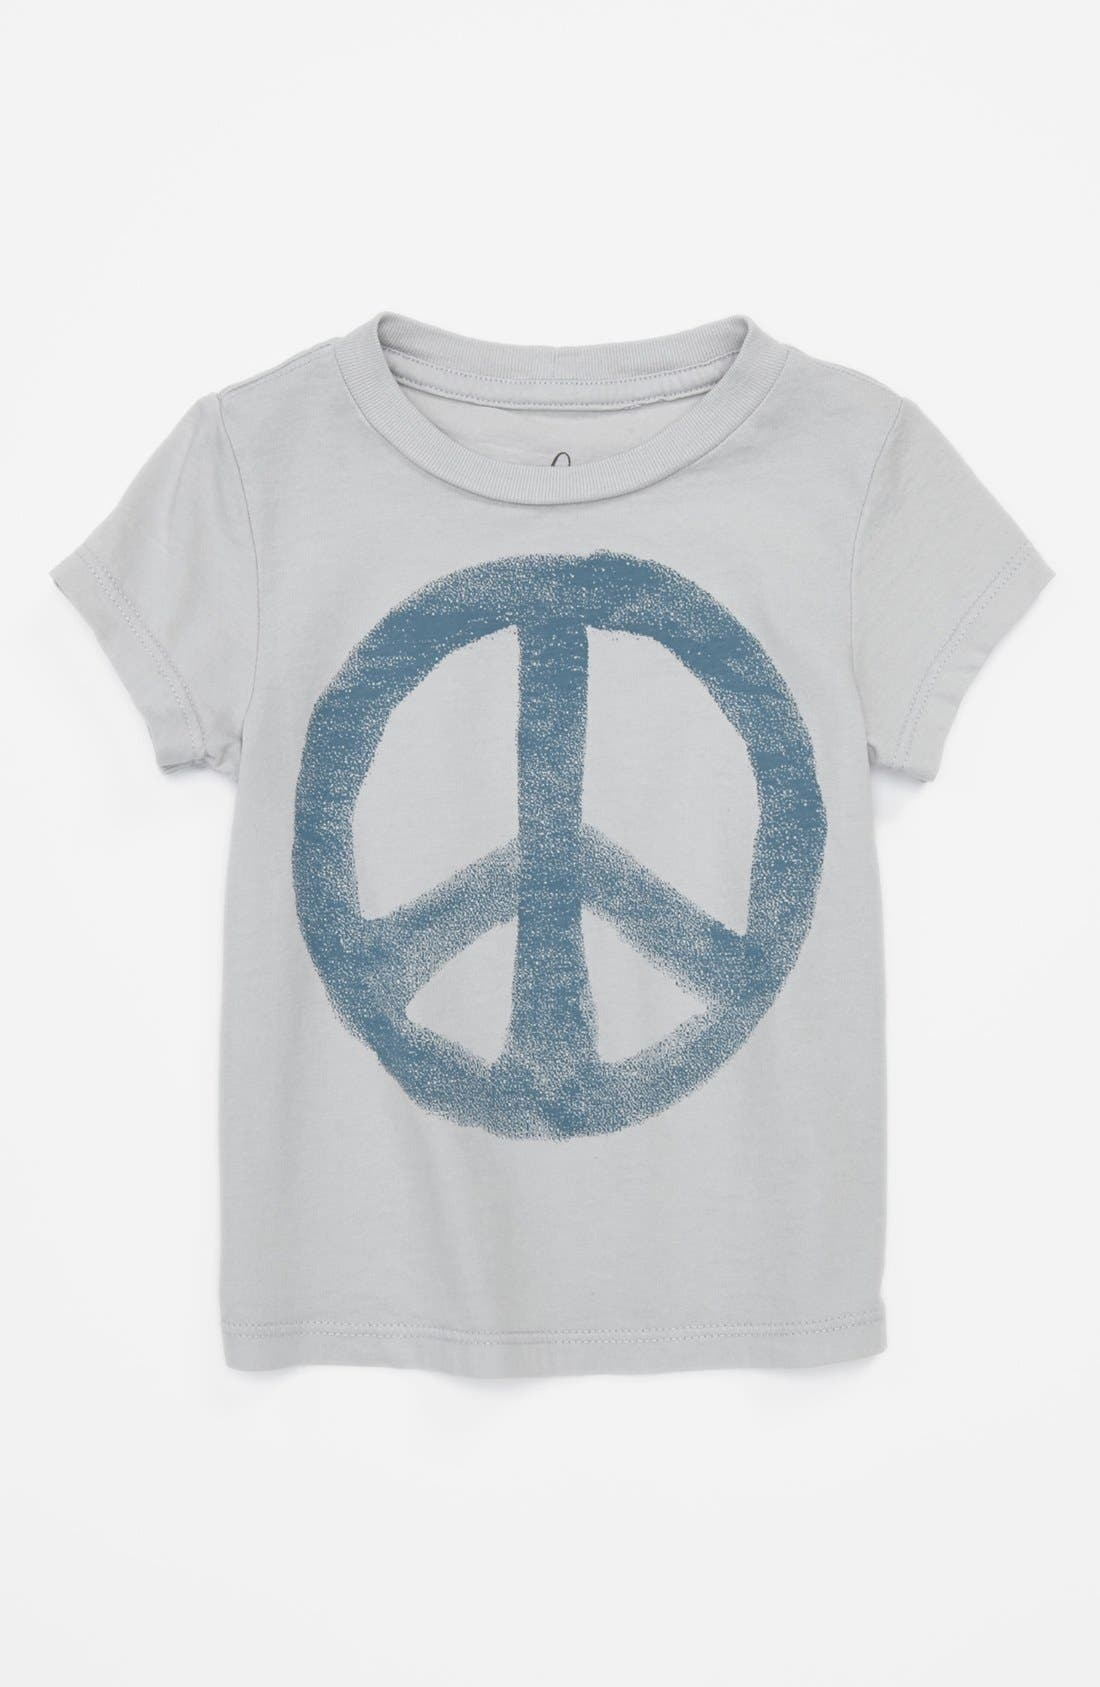 Main Image - Peek 'Peace - Little Peanut' T-Shirt (Baby Boys)